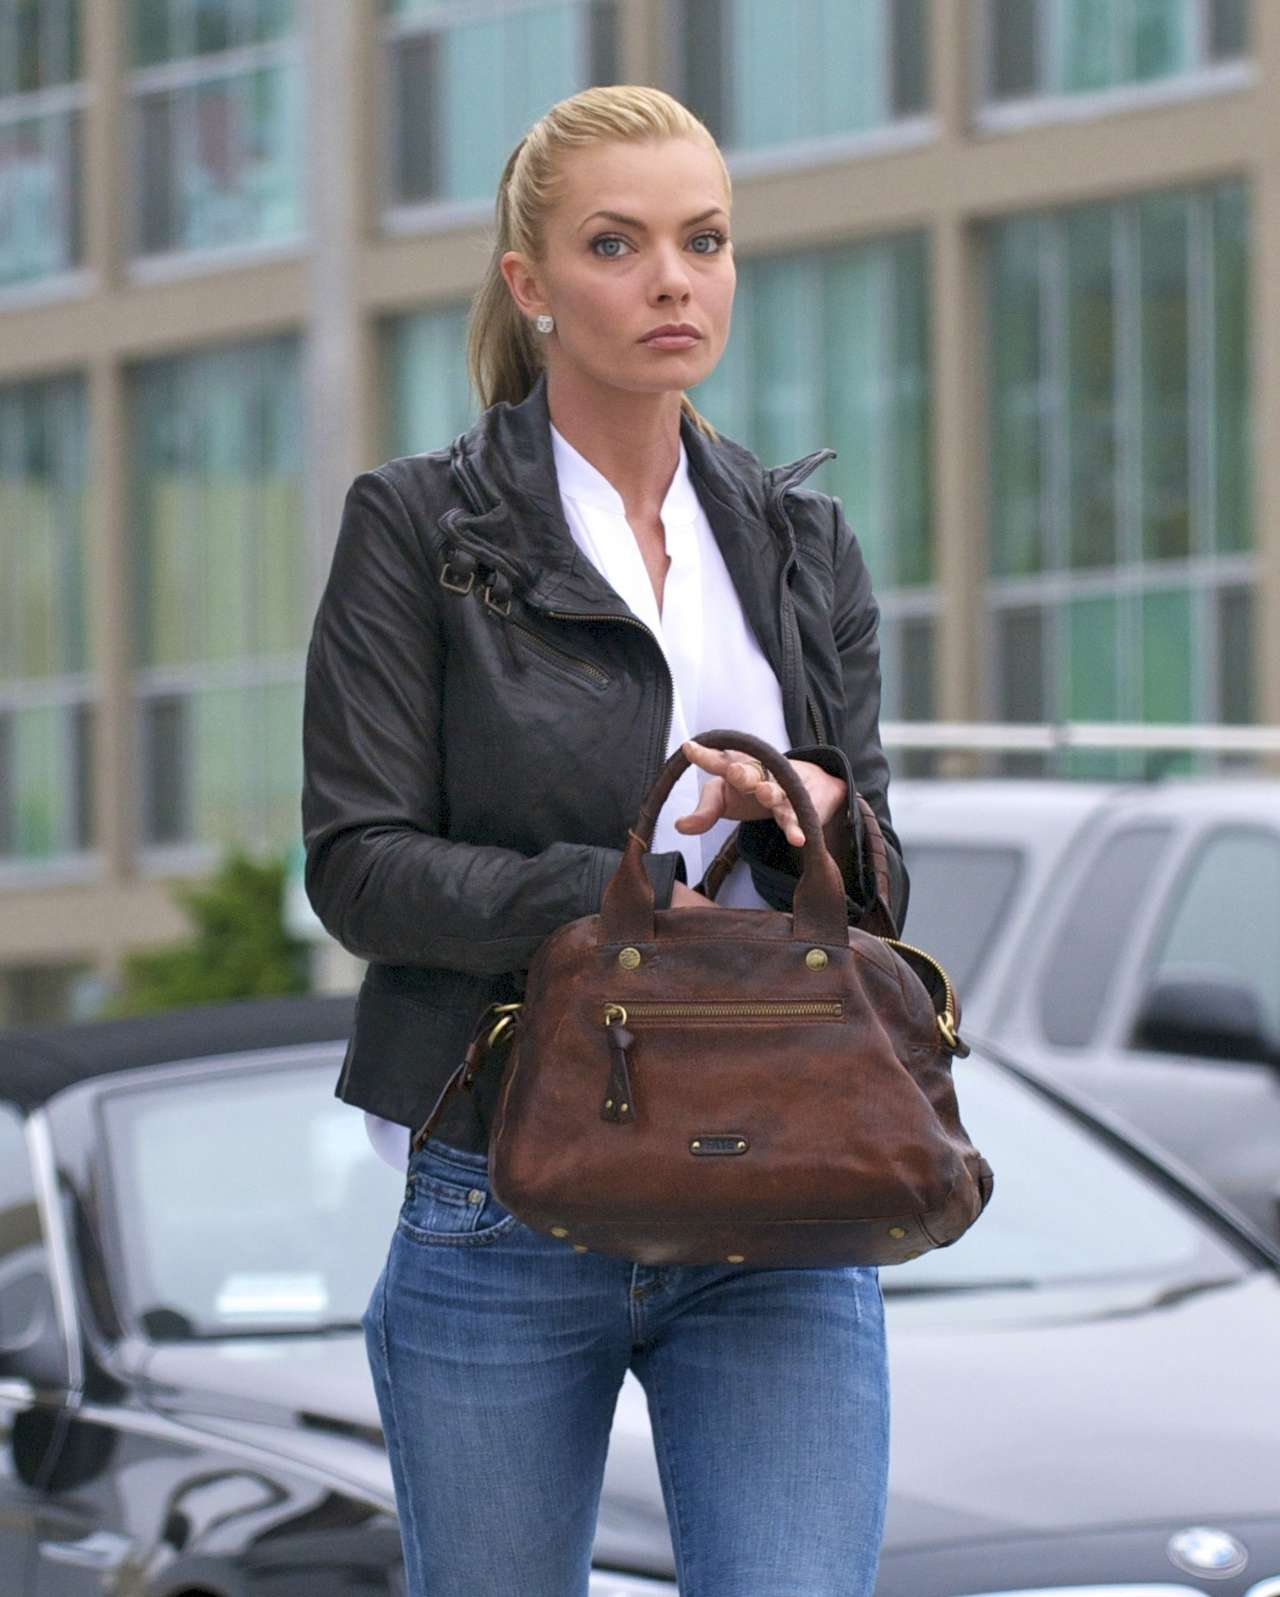 Jaime pressly busted for dui